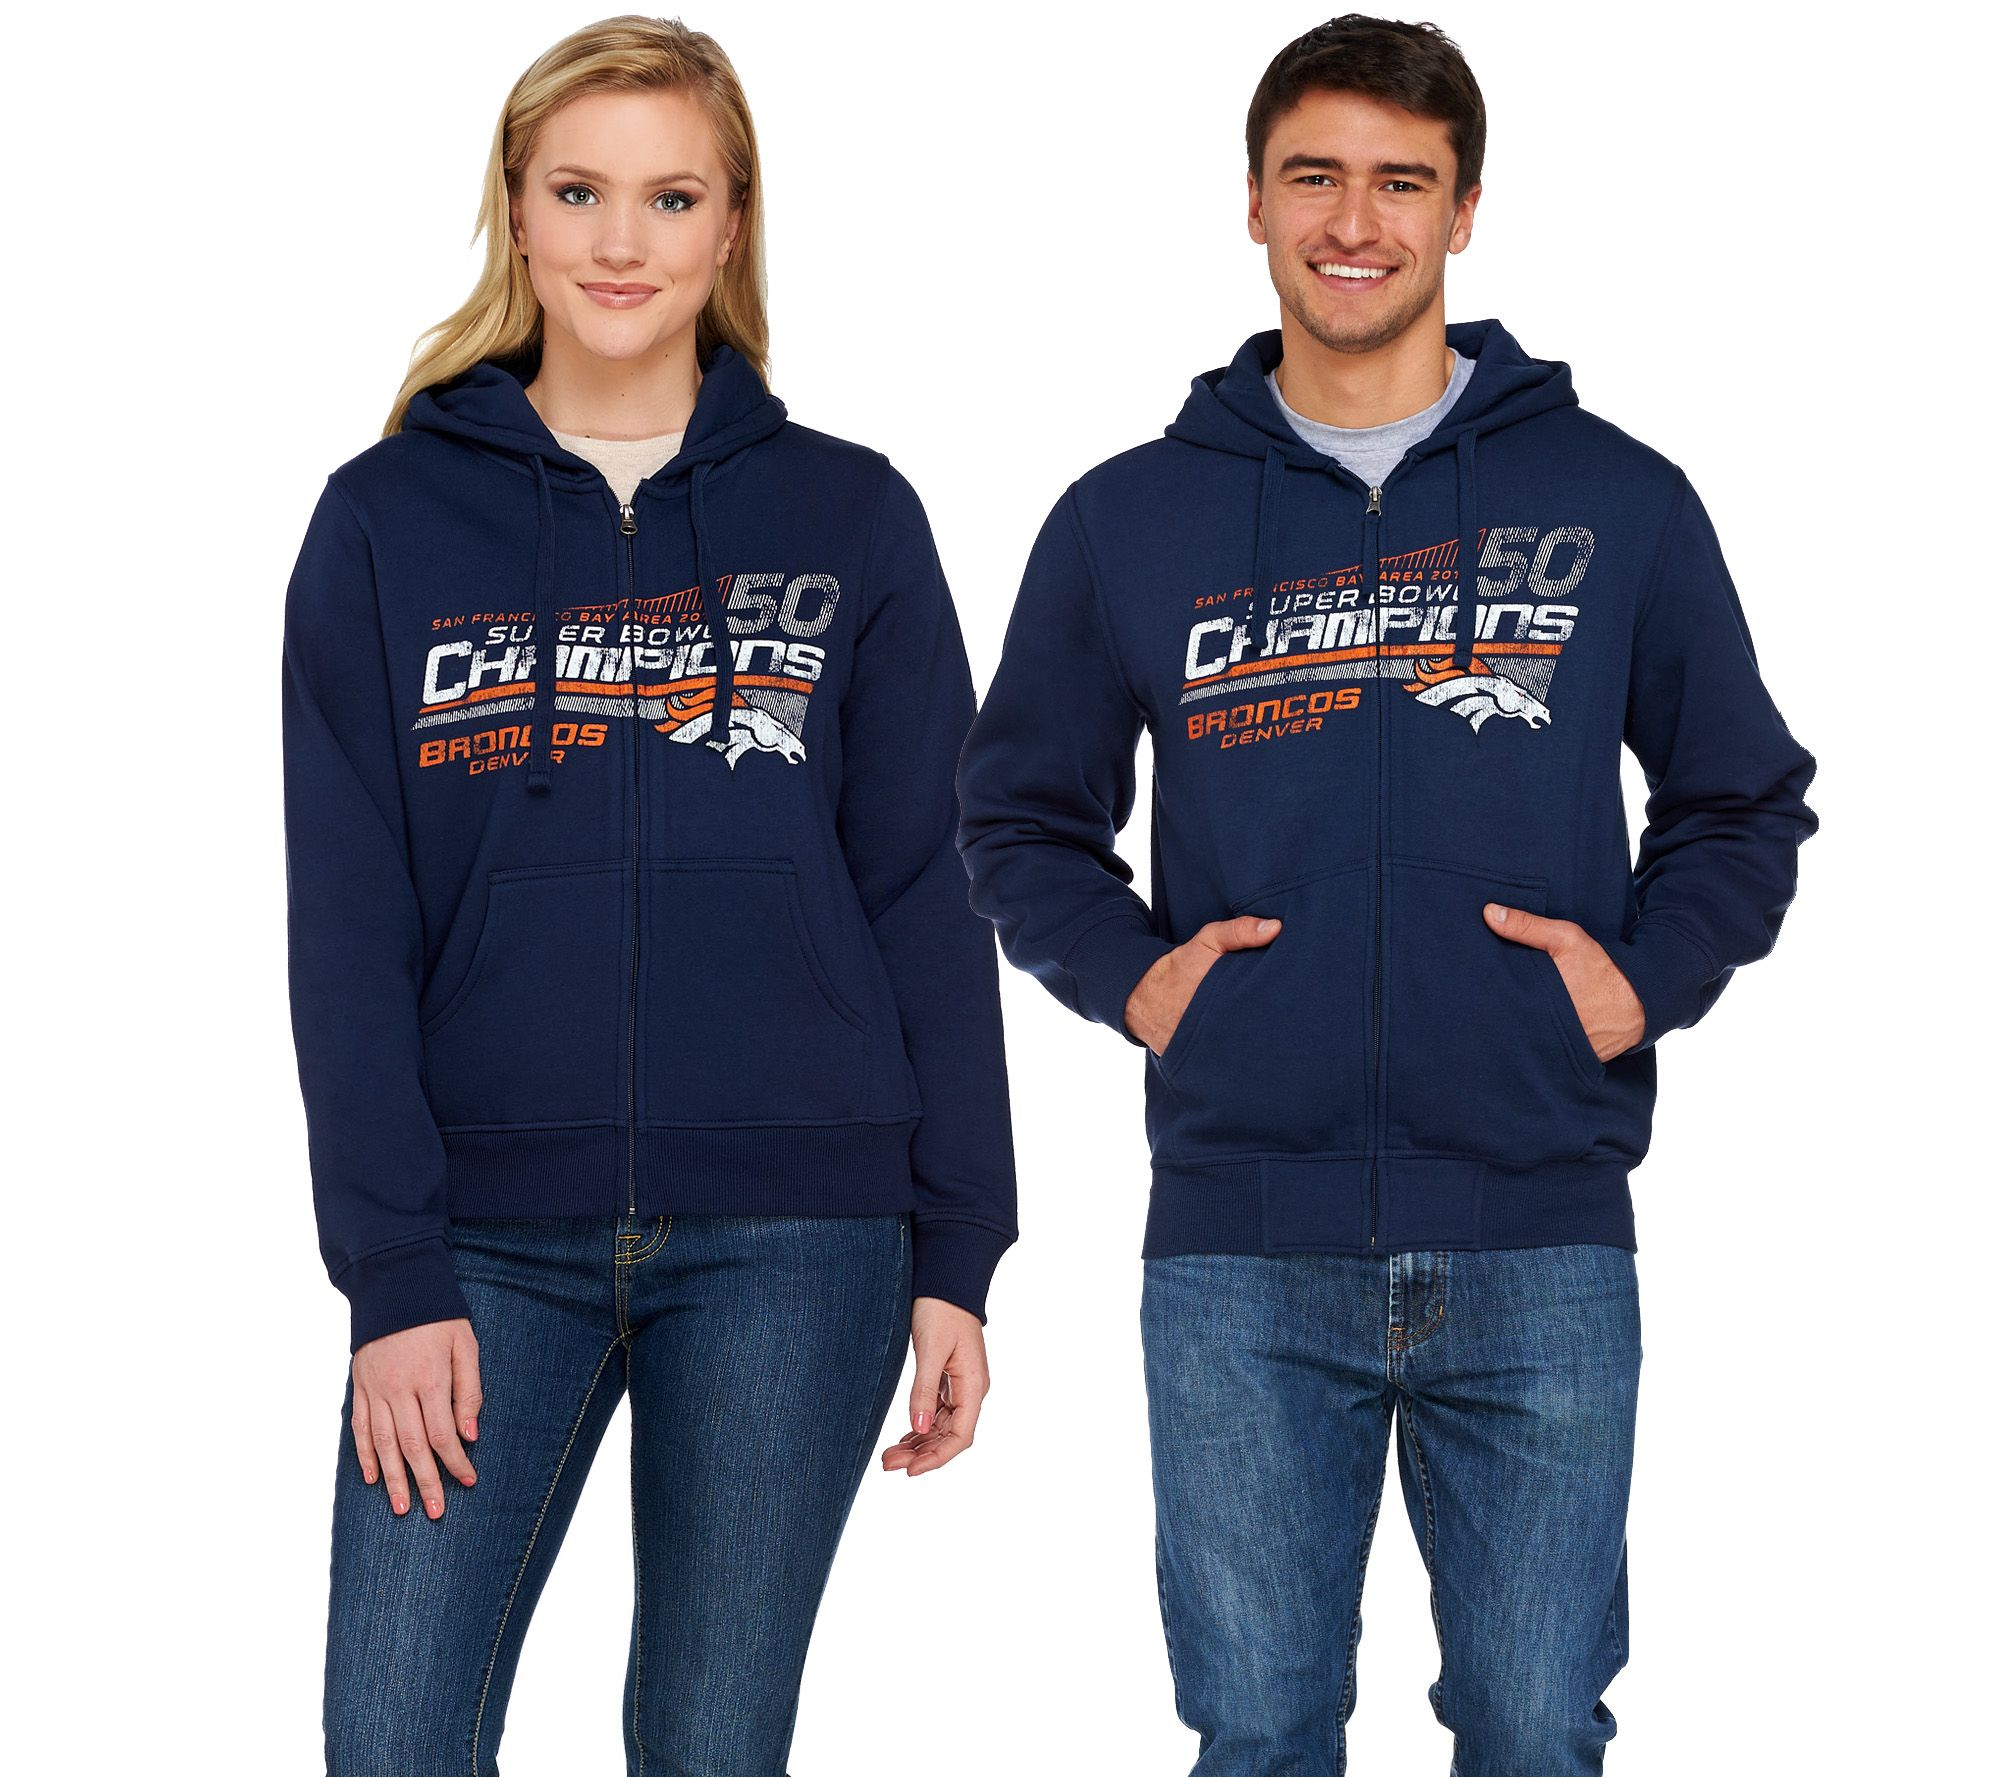 SH3/4 NFL SuperBowl 50 Champions Broncos Zip Up Hoodie